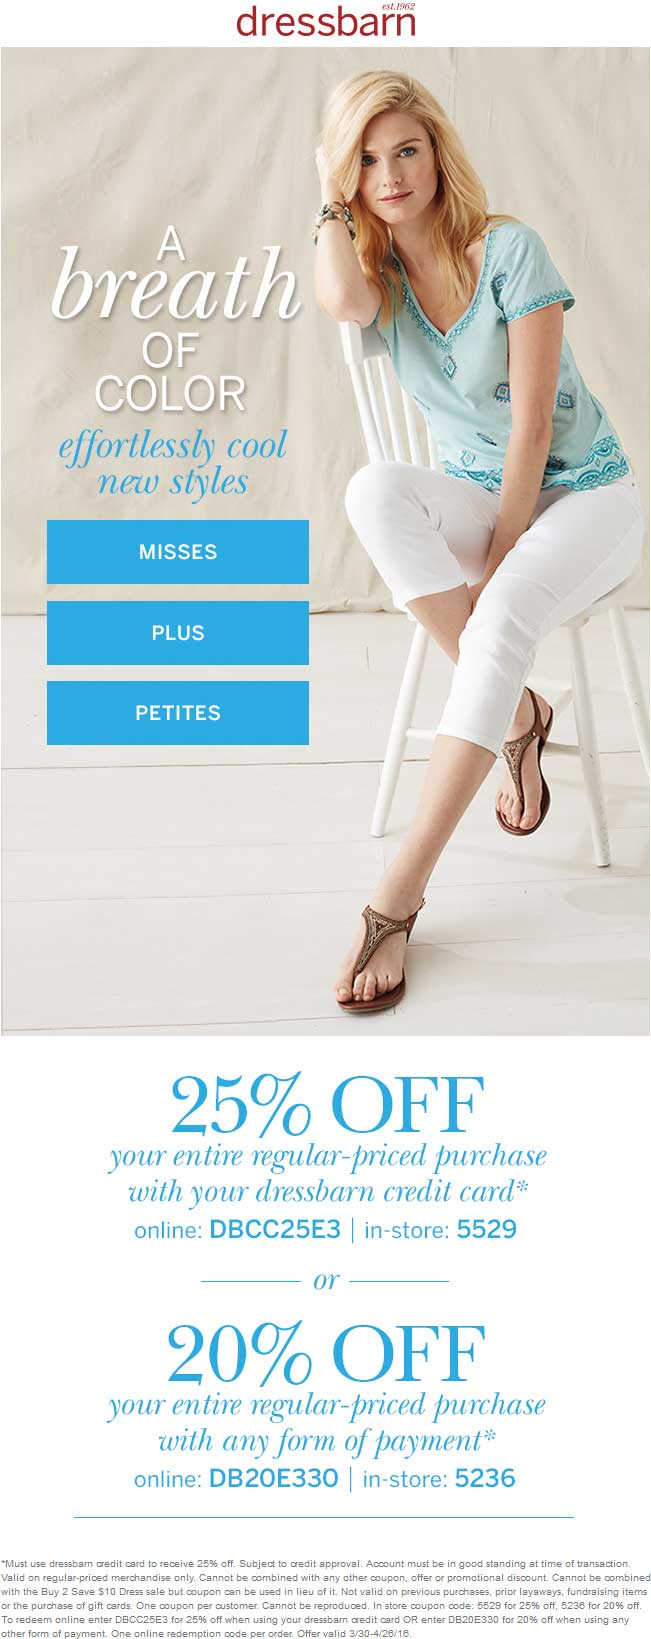 Dressbarn Coupon January 2019 20% off at dressbarn, or online via promo code DB20E330